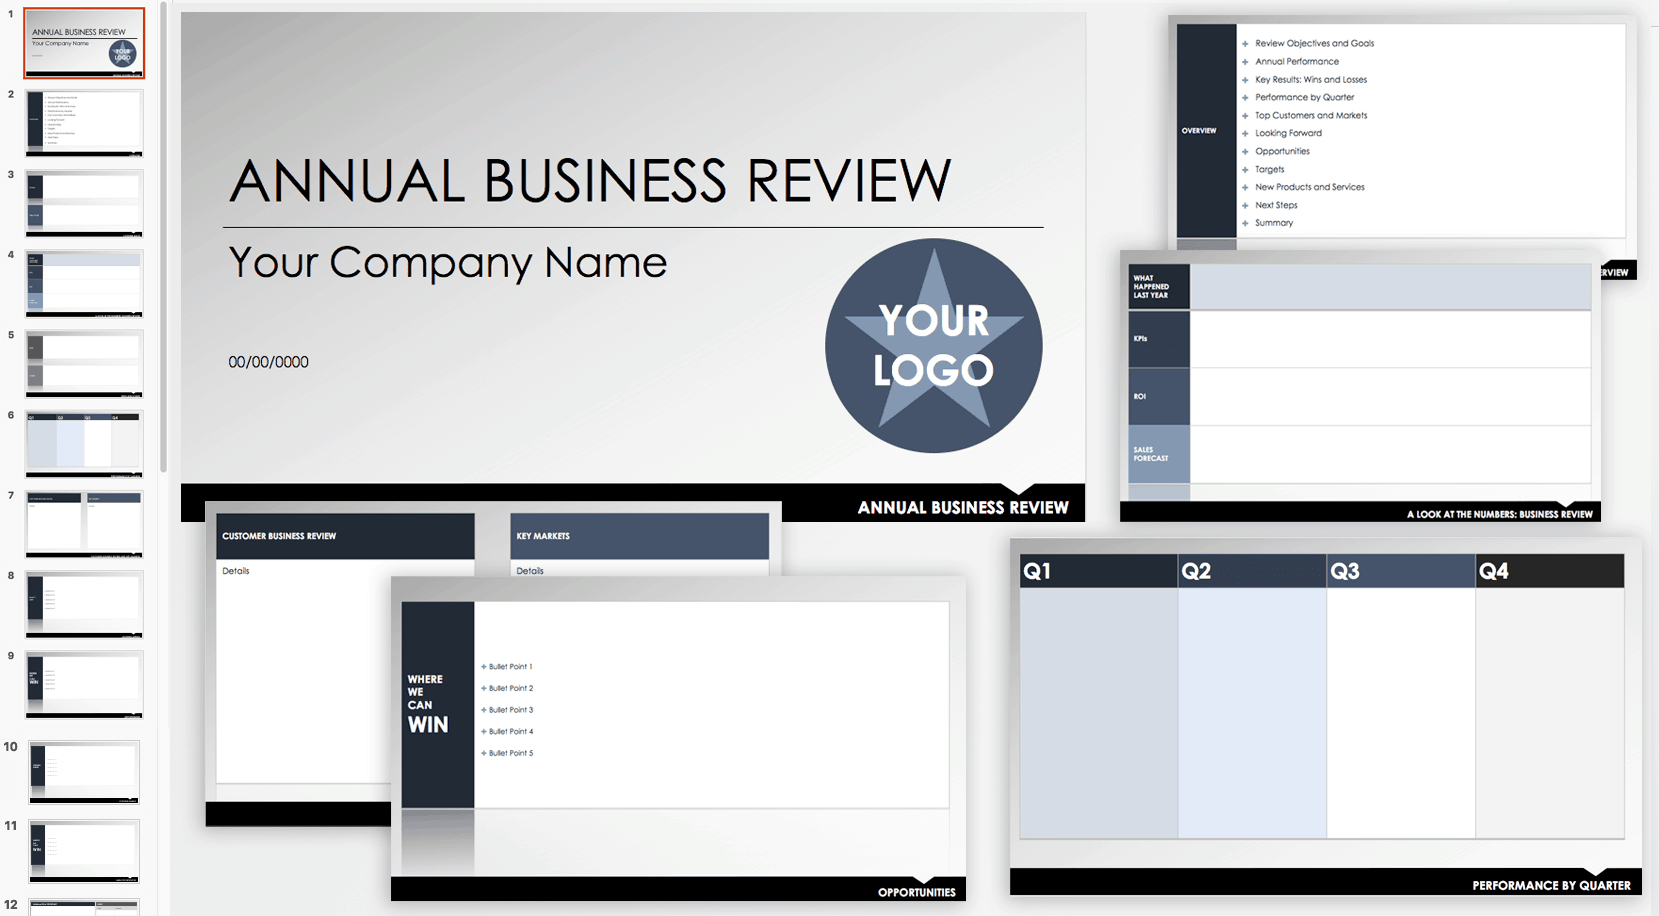 Free Qbr And Business Review Templates | Smartsheet Throughout Customer Business Review Template